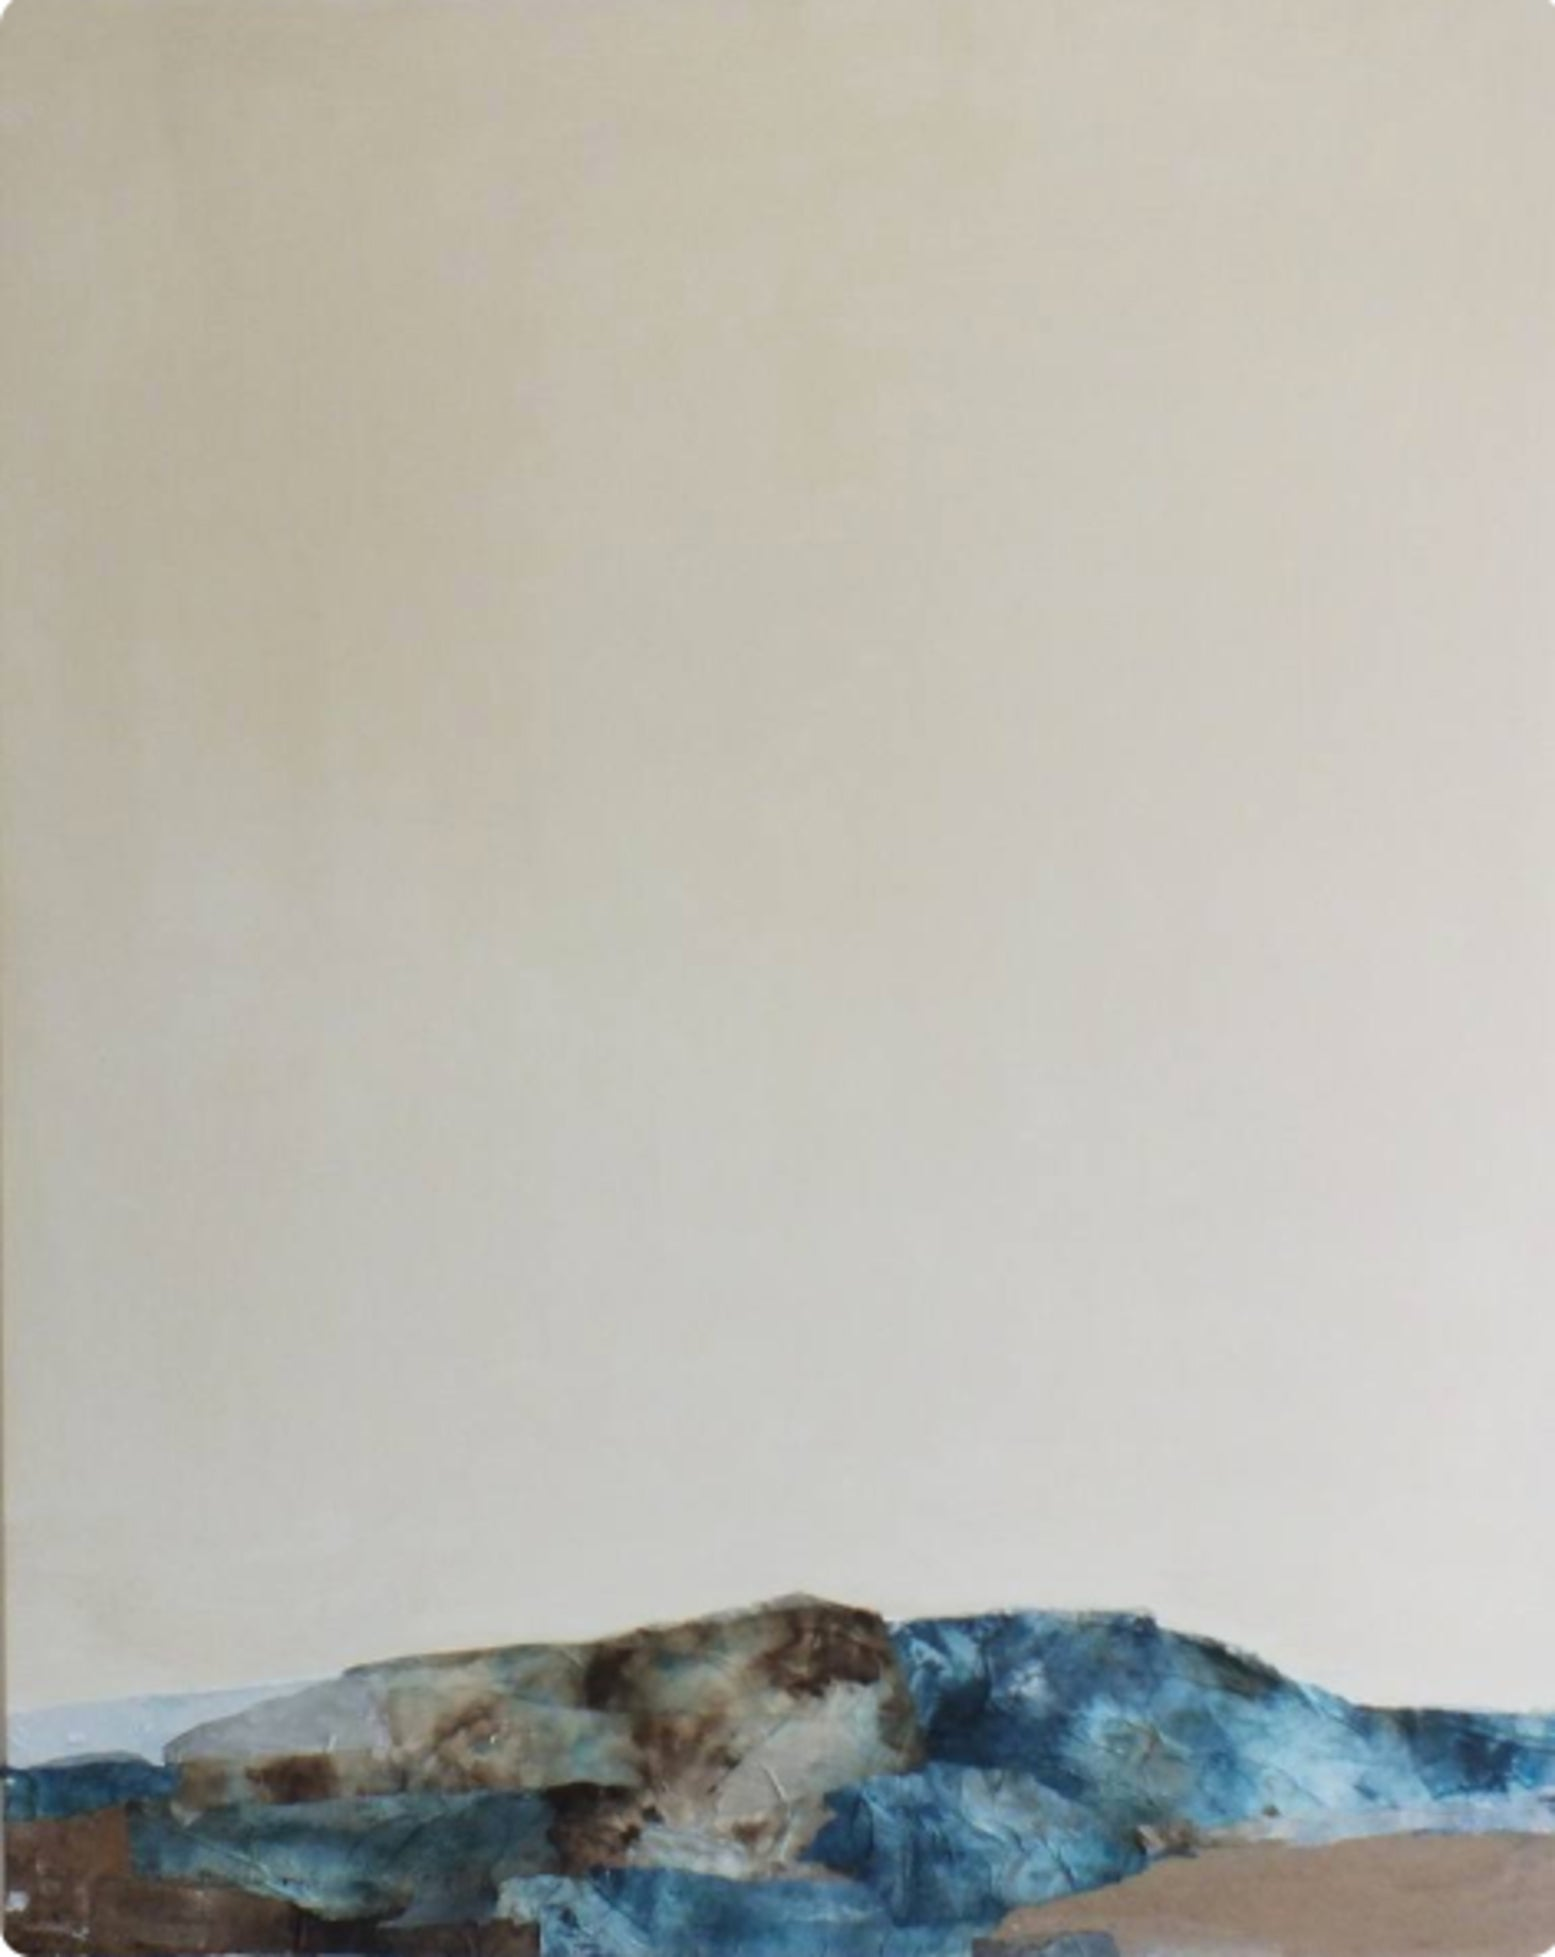 Landscape 50, Contemporary Minimalist Abstract Mixed media Blue Collage Canvas